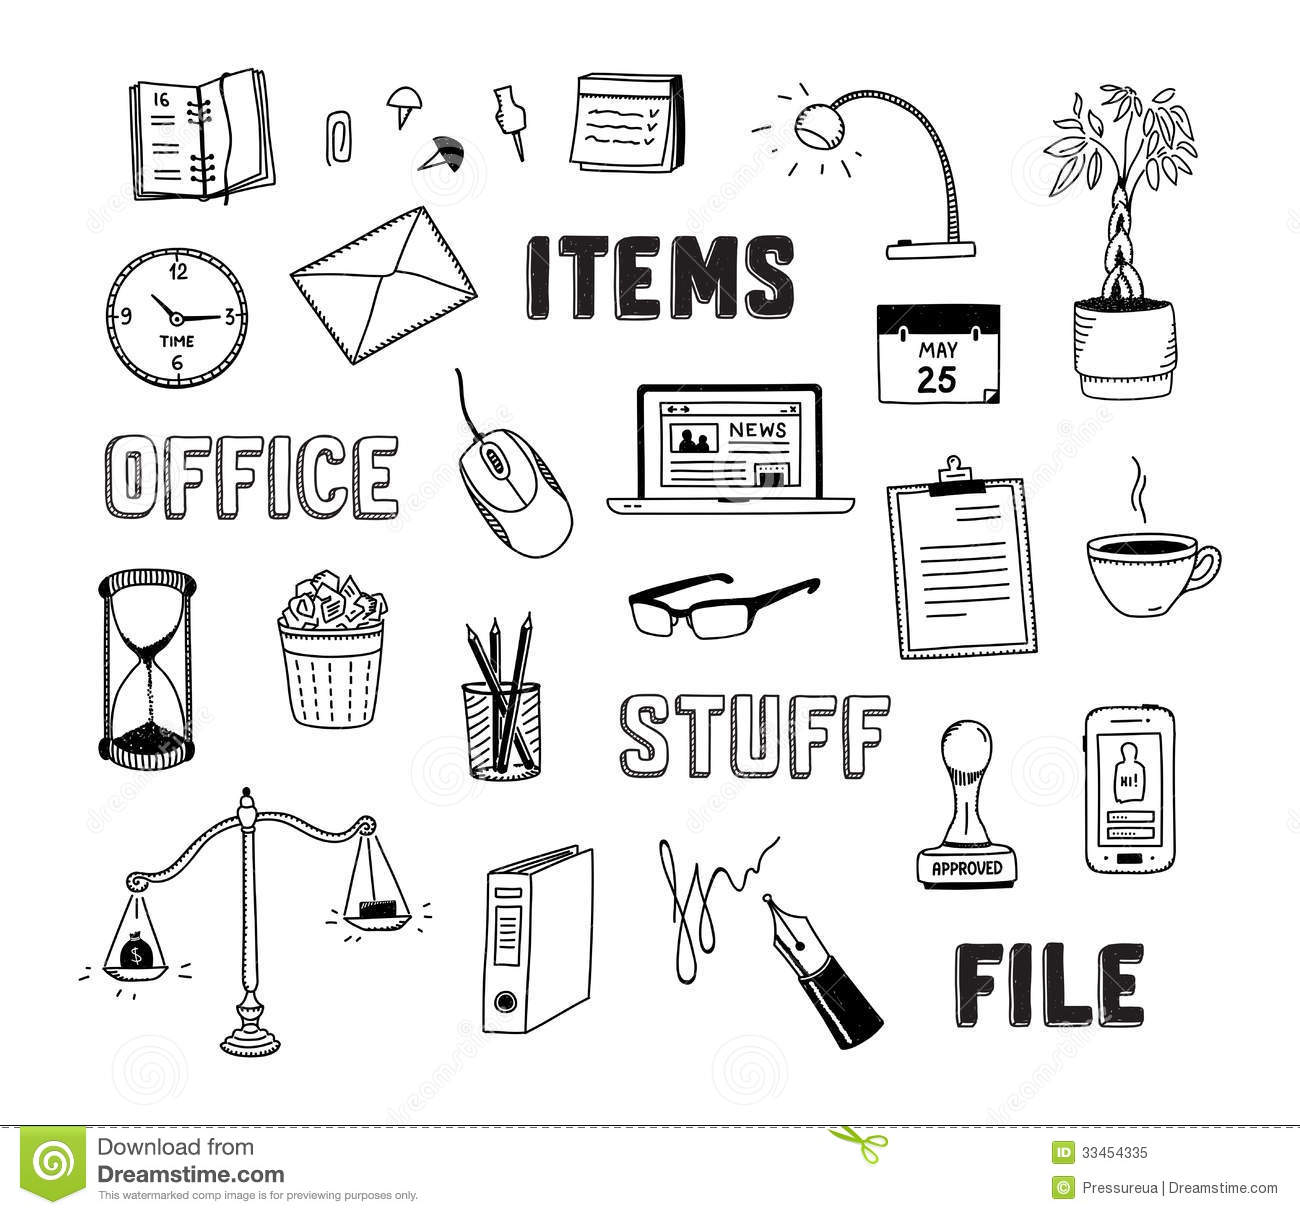 ElecGen likewise Stock Photography Anchor Icon Set Vector Black White Image30965032 furthermore Root 20blower 20constitution additionally General Overview Of The Civilian And Military Emc Norms furthermore Show product. on ship equipment